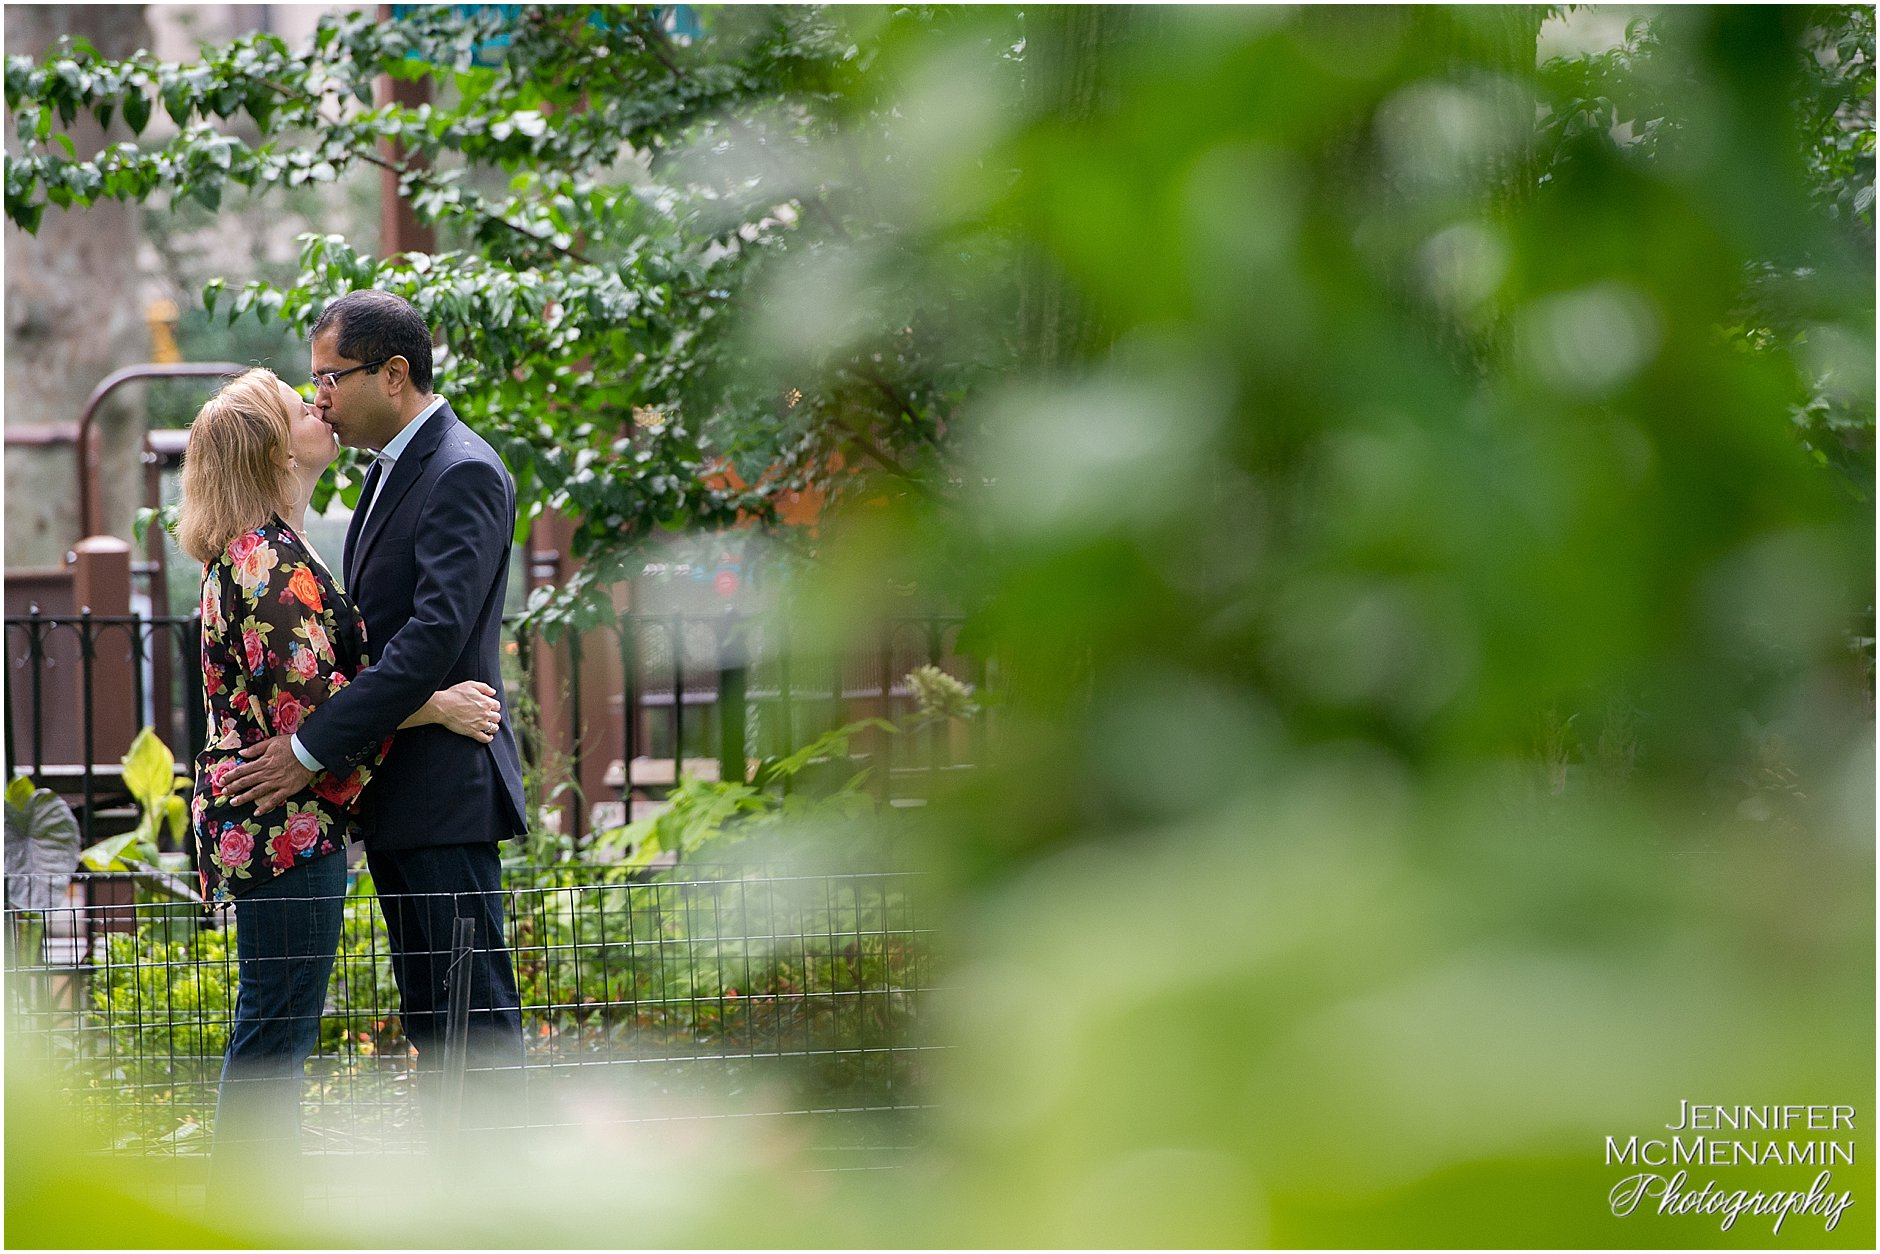 011-AkehurstShetty_0503-0098_Jennifer-McMenamin-Photography-New-York-City-engagement-photos